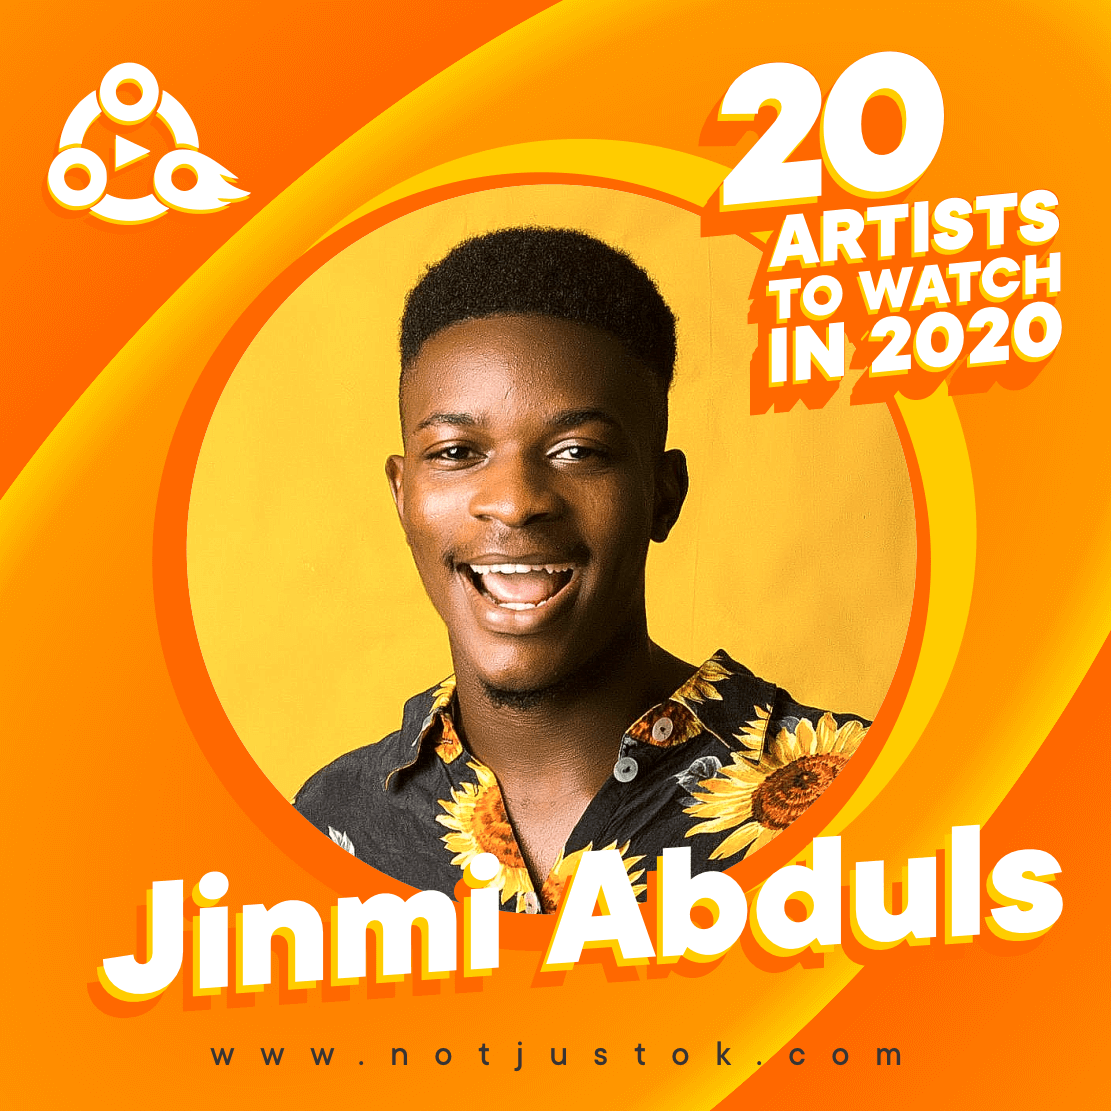 The 20 Artists To Watch In 2020 - Jimi Abduls